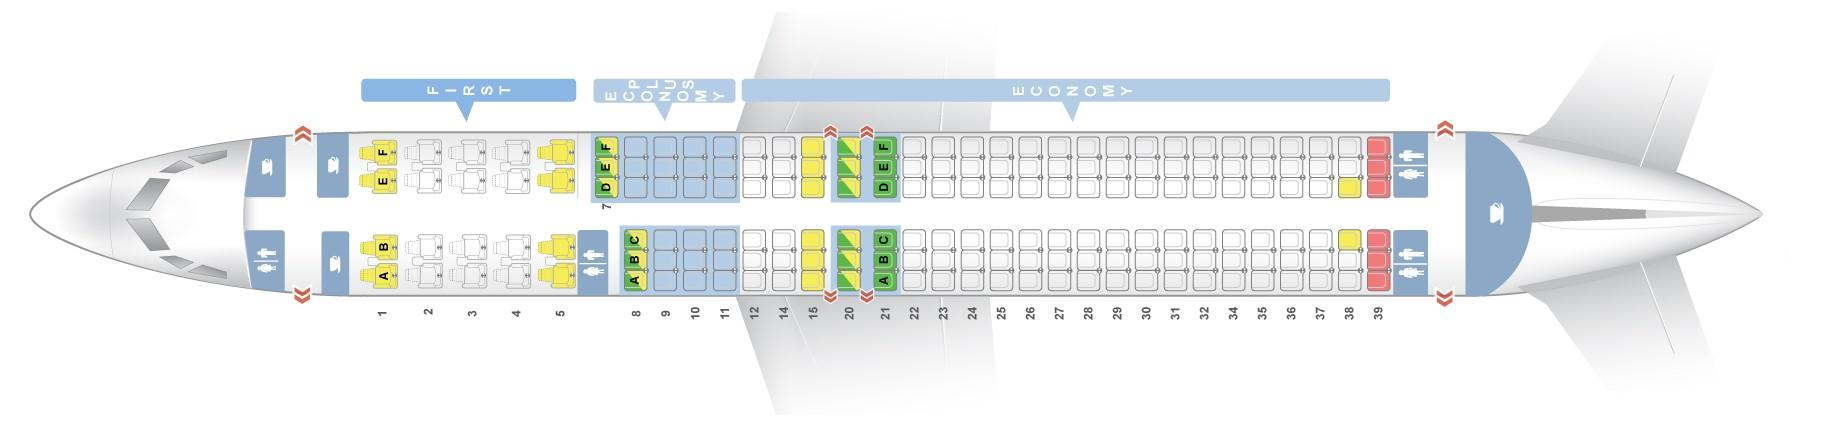 Seat Map Boeing 737 900 United Airlines Best Seats In Plane